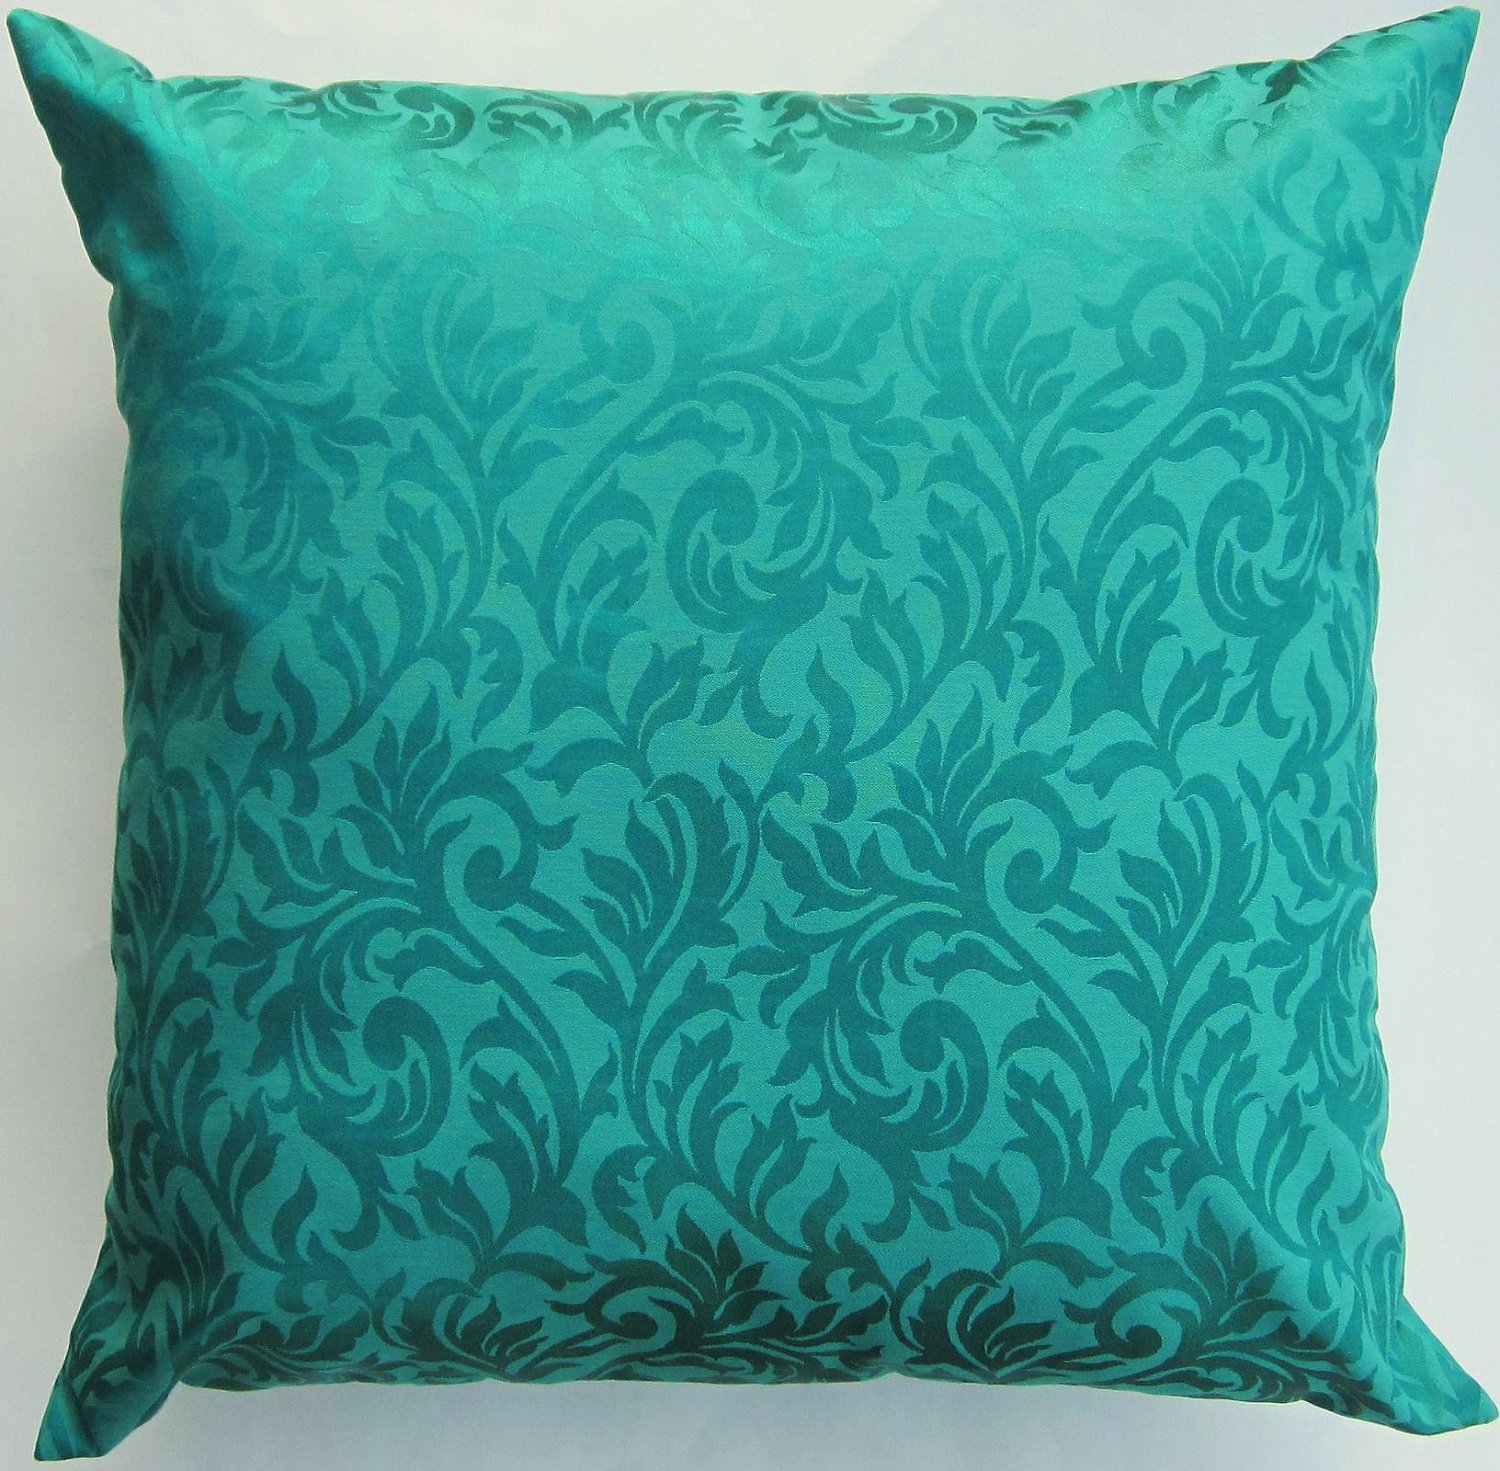 Charming Cushions teal throw pillows for Queen bed size king bedsize or sectional sofa also wicker rattan chairs for living room accesories parts furniture ideas